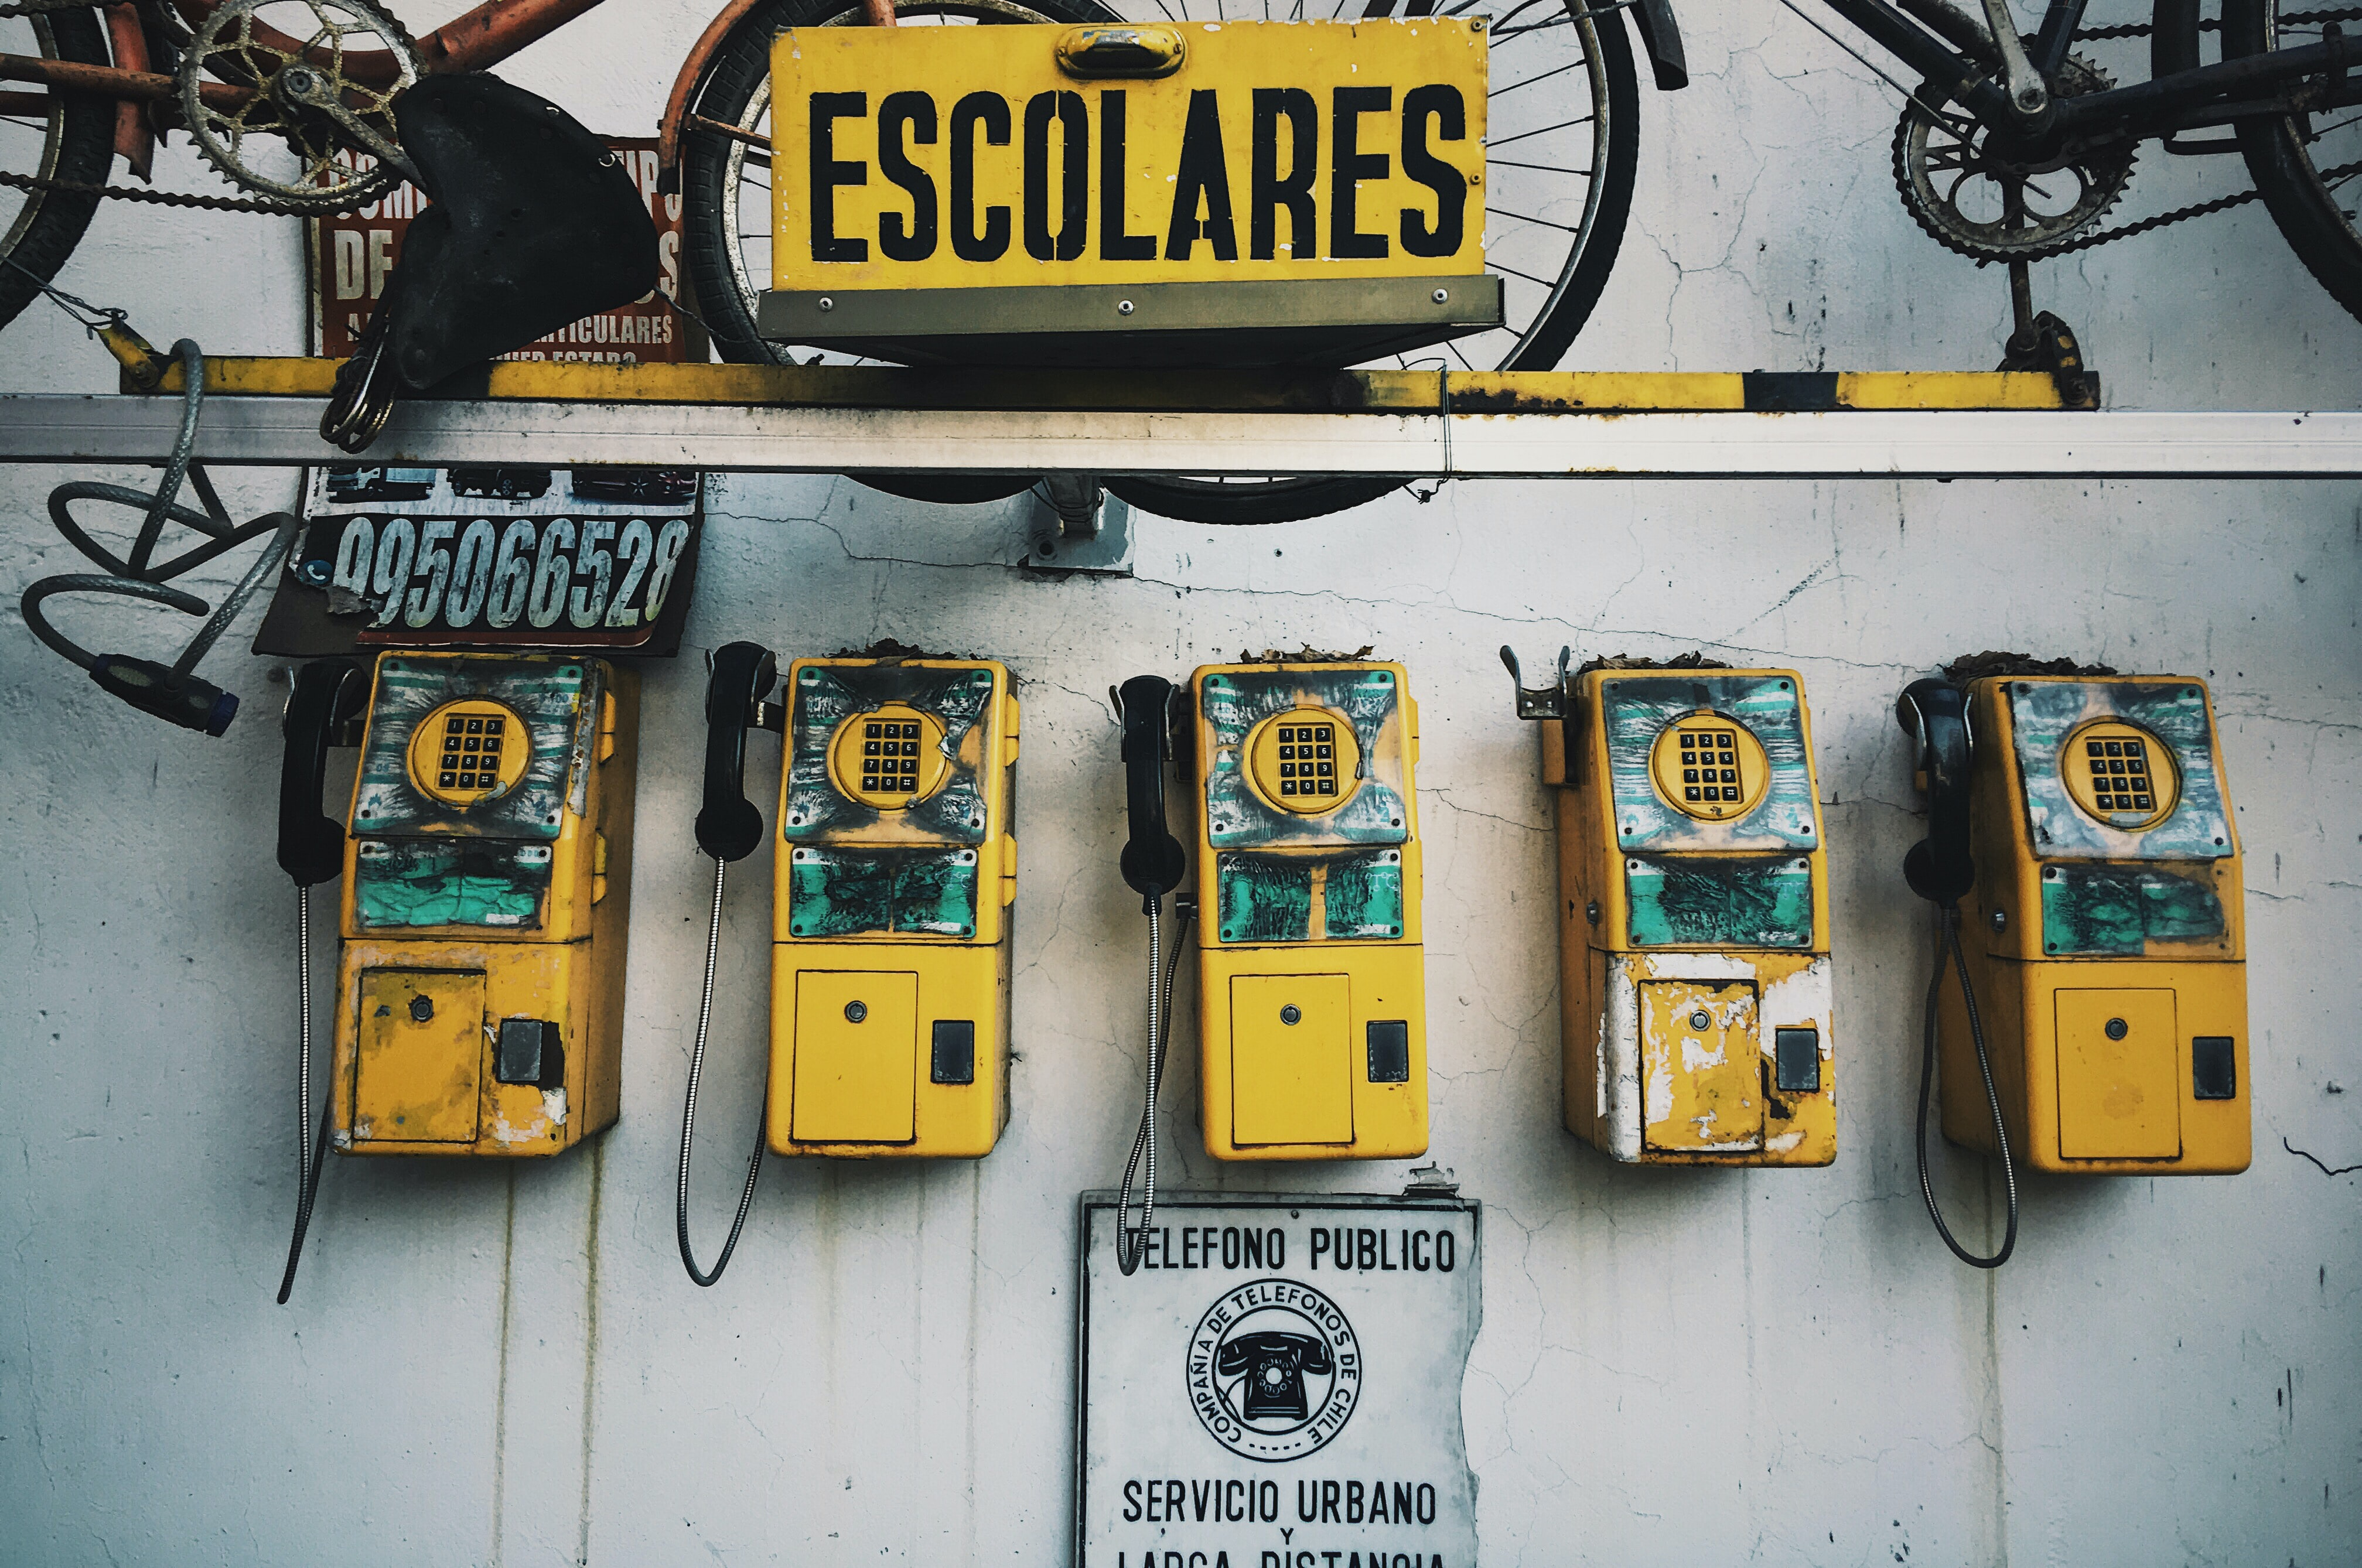 five yellow payphones